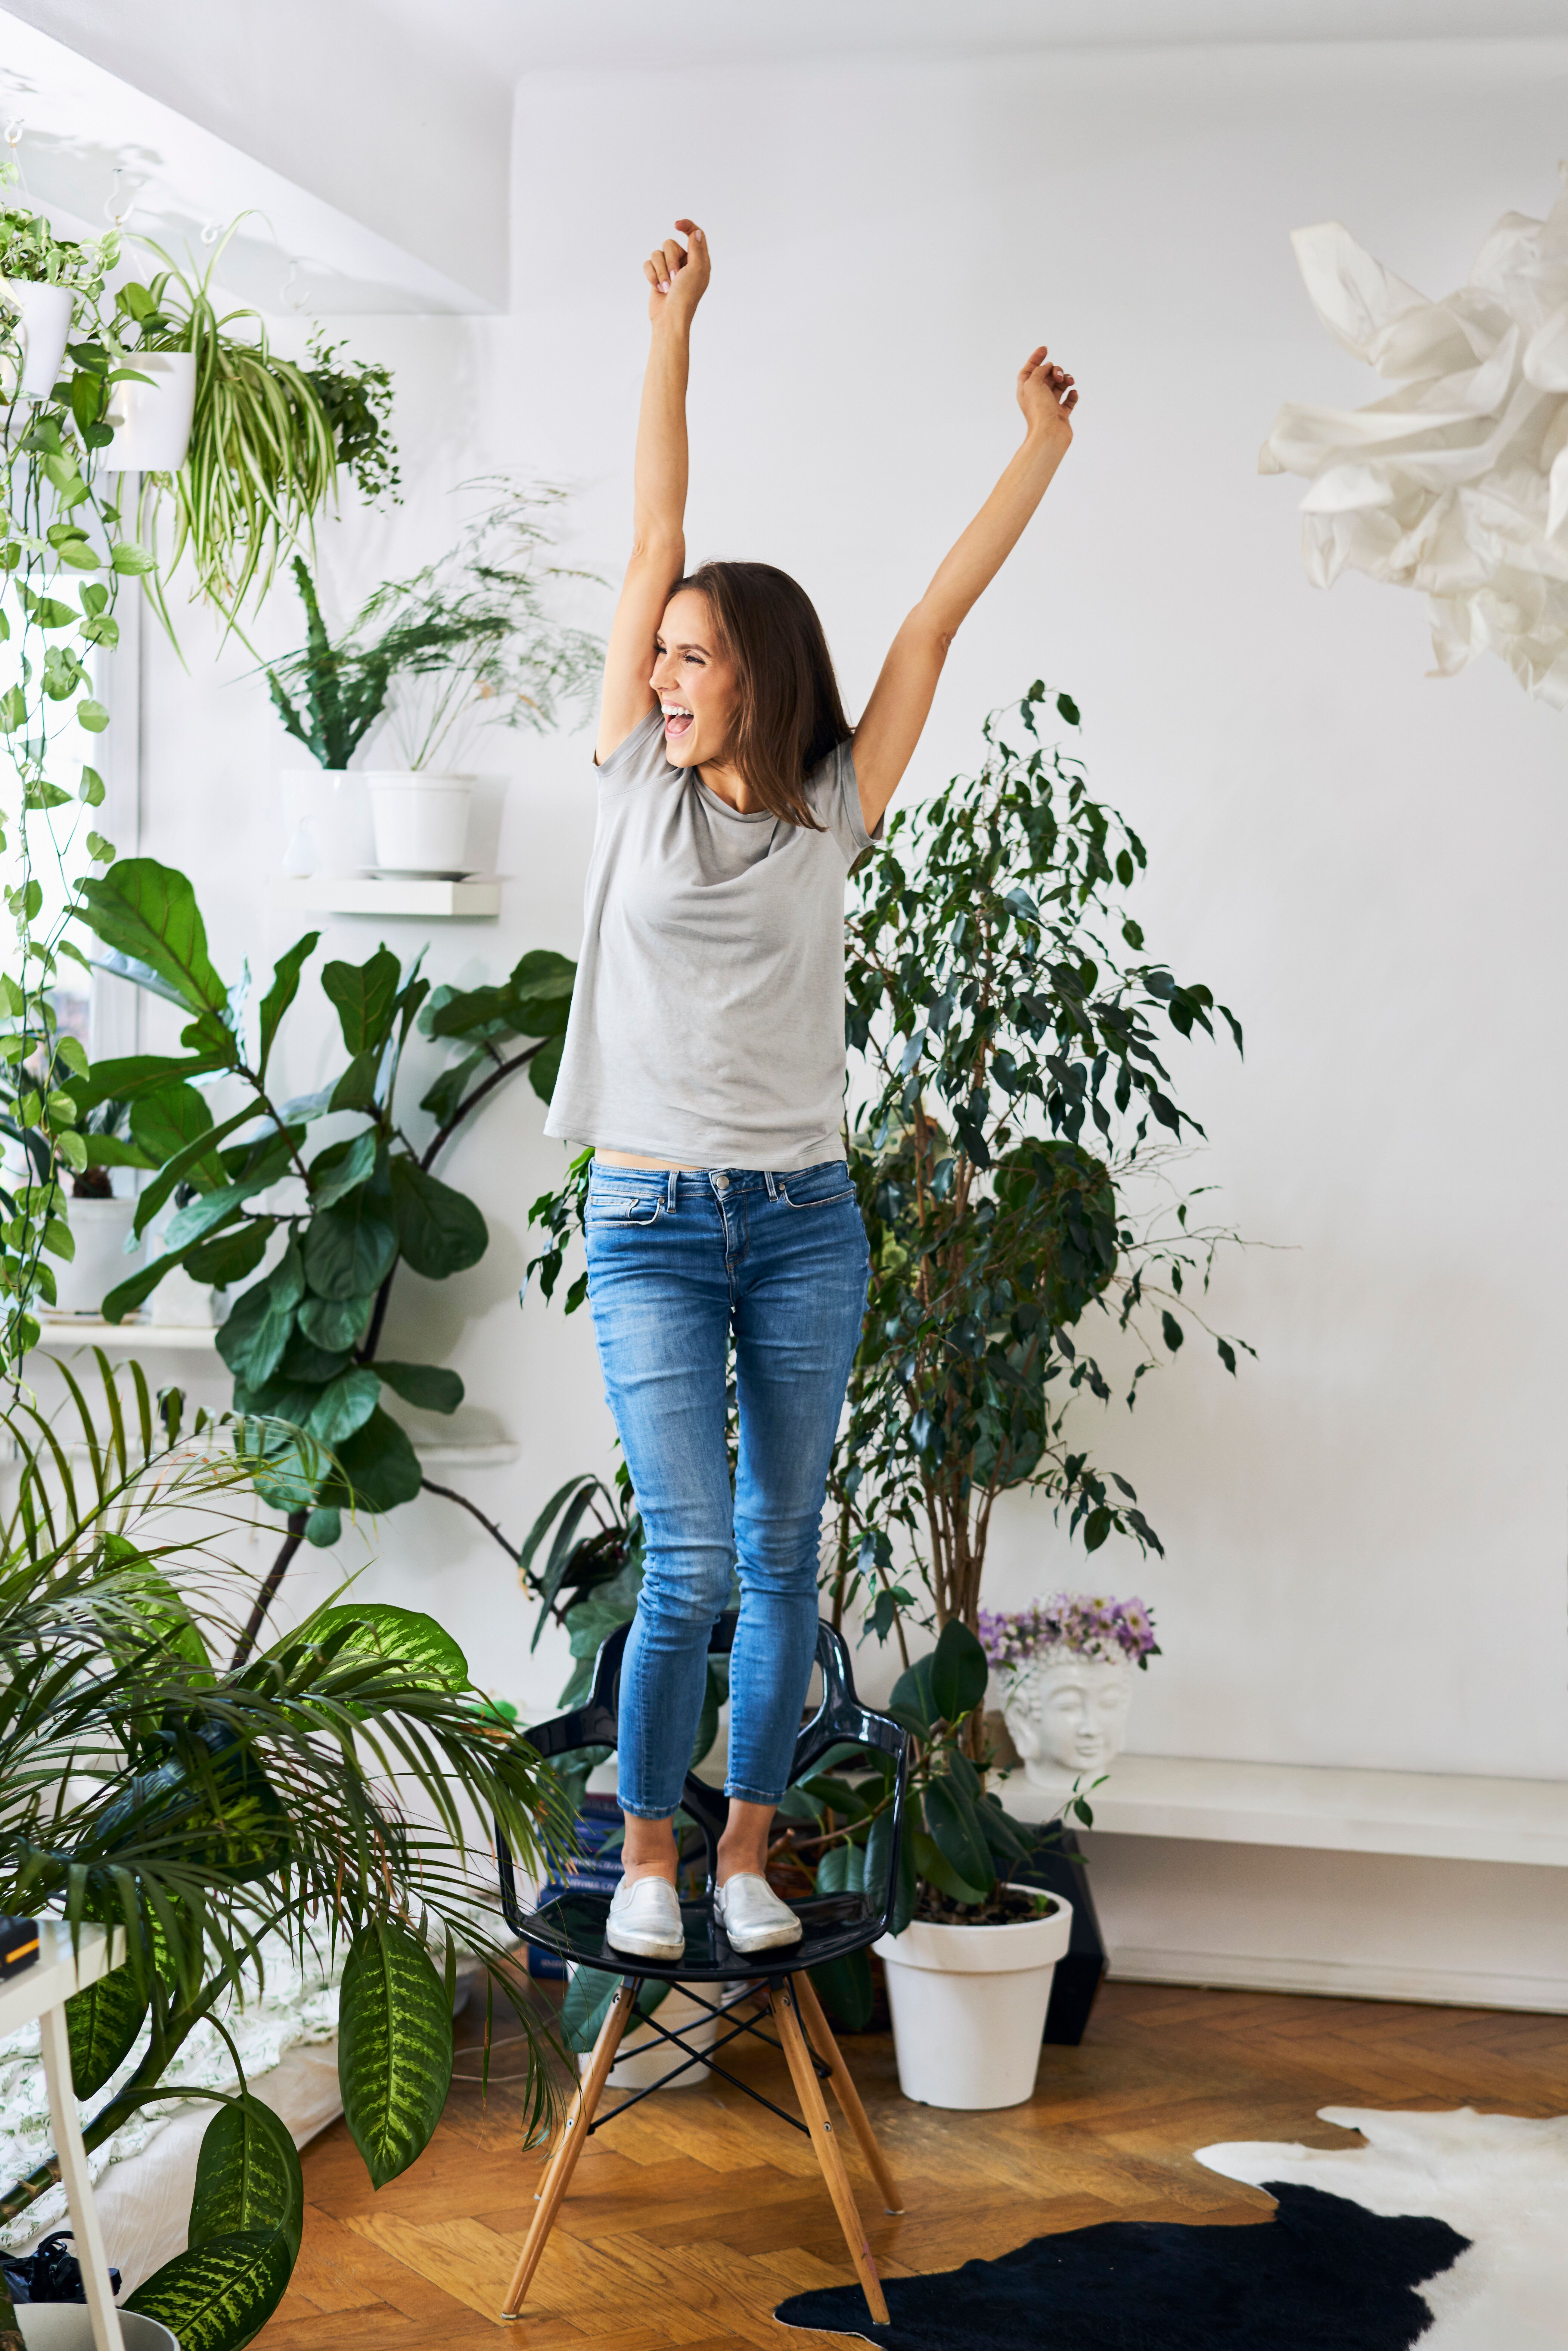 Raised Plant Stands Under 50 For The Proud Plant Parent Huffpost Life